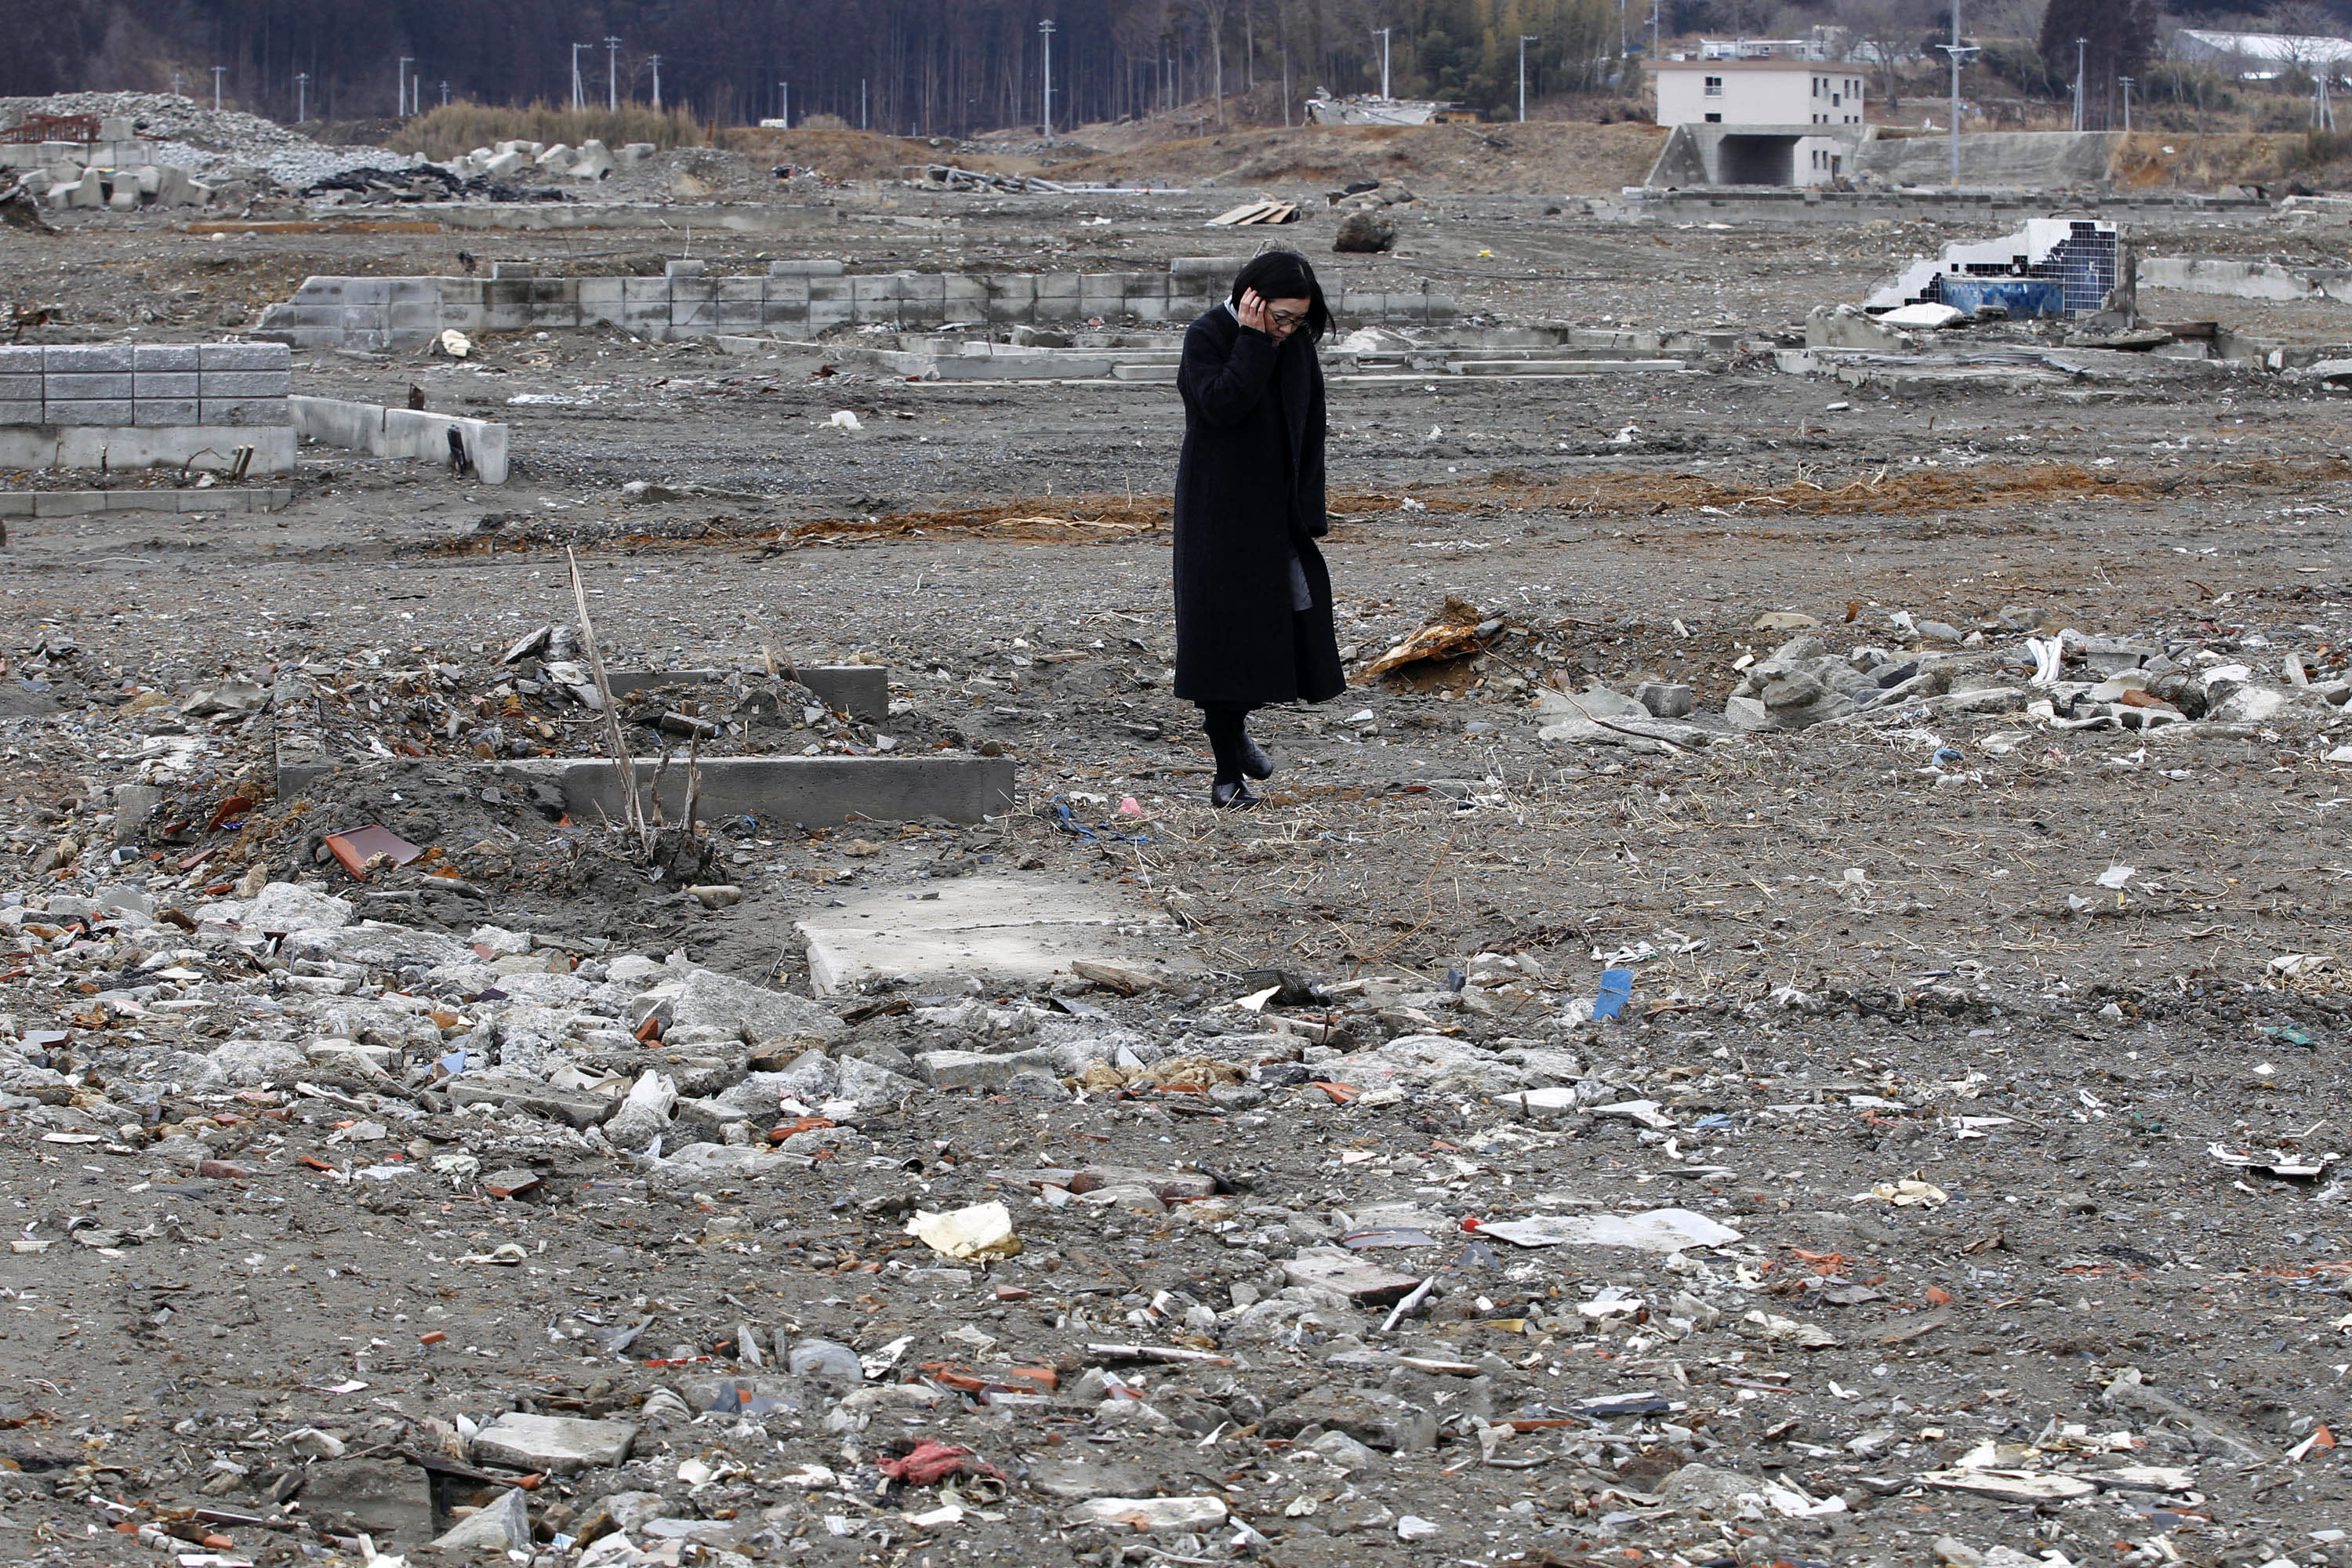 A woman stands in an area devastated by the March 11, 2011 earthquake and tsunami, in Minamisanriku, Miyagi Prefecture, Sunday, March 11, 2012. Japan on Sunday was remembering the massive earthquake and tsunami that struck the nation a year ago, killing just over 19,000 people and unleashing the world's worst nuclear crisis in a quarter century.(AP Photo/Shizuo Kambayashi)